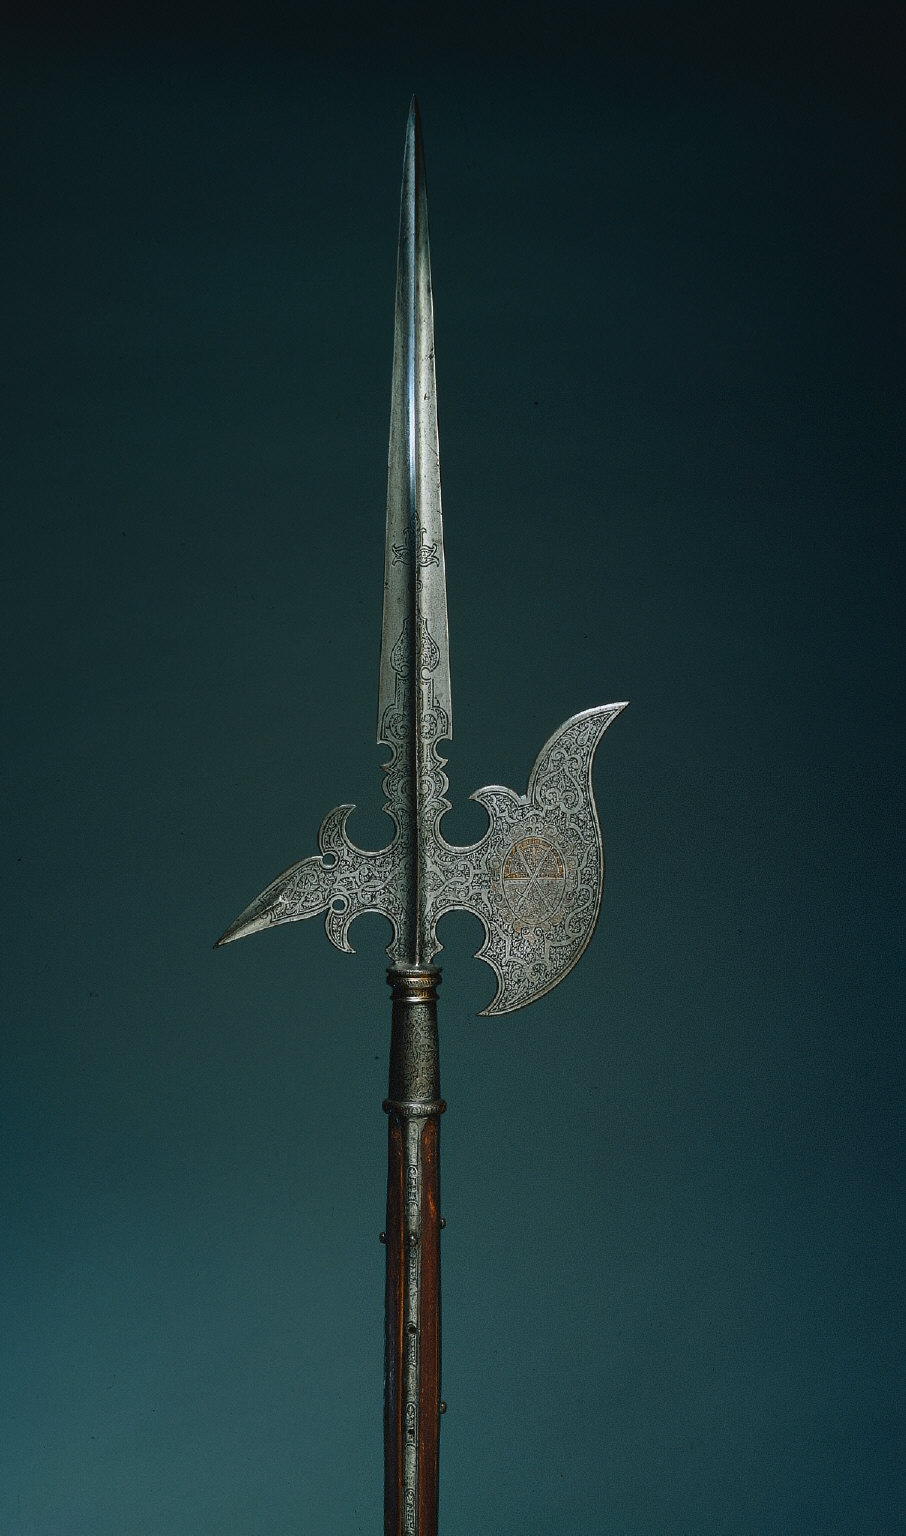 Parade Halberd with Arms of Elector Christian I of Saxony